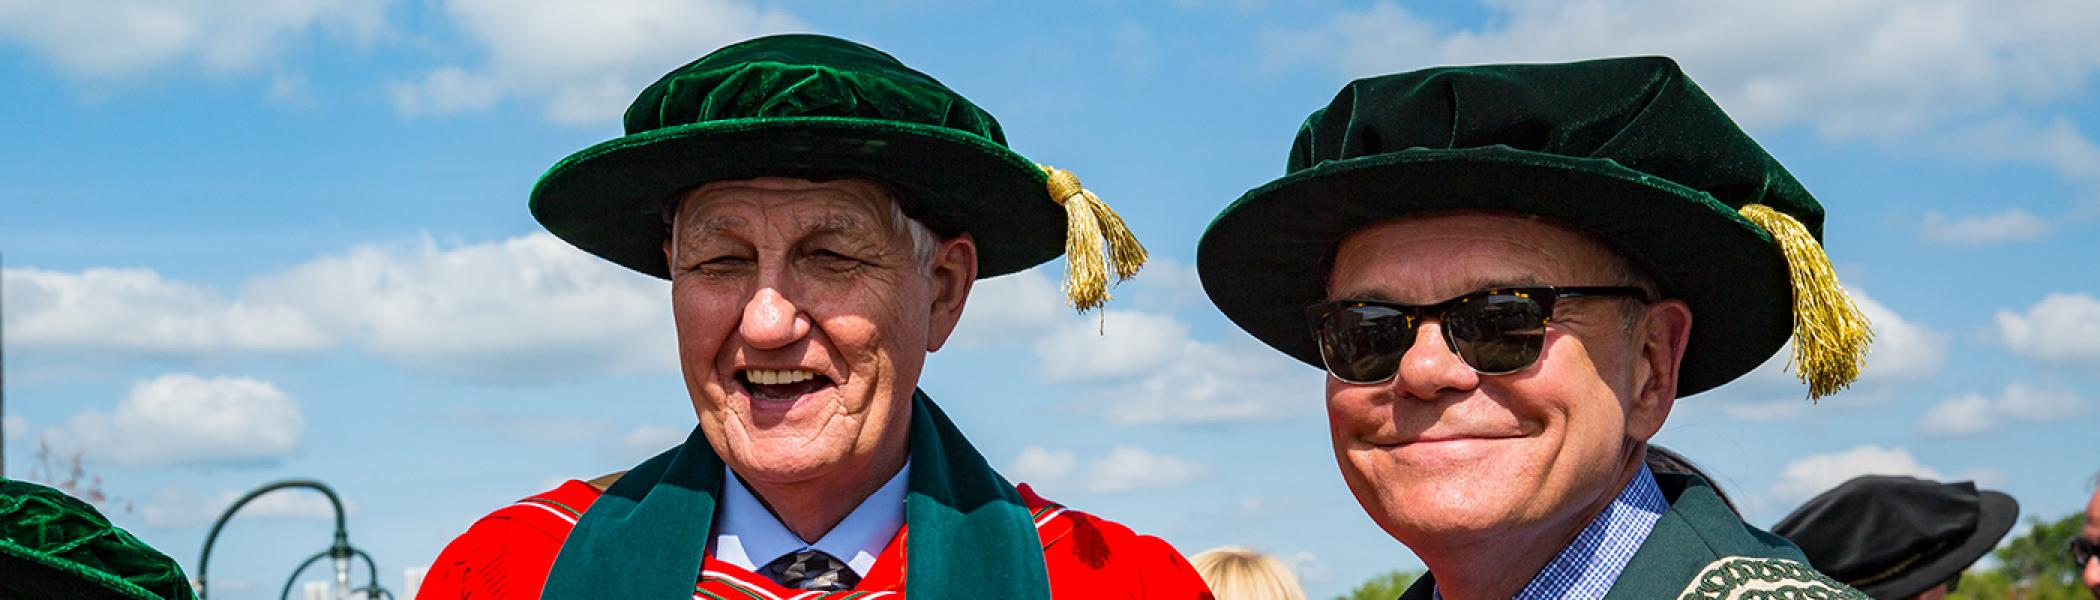 Ph.D graduate standing beside Don Tapscott, smiling at the camera following convocation